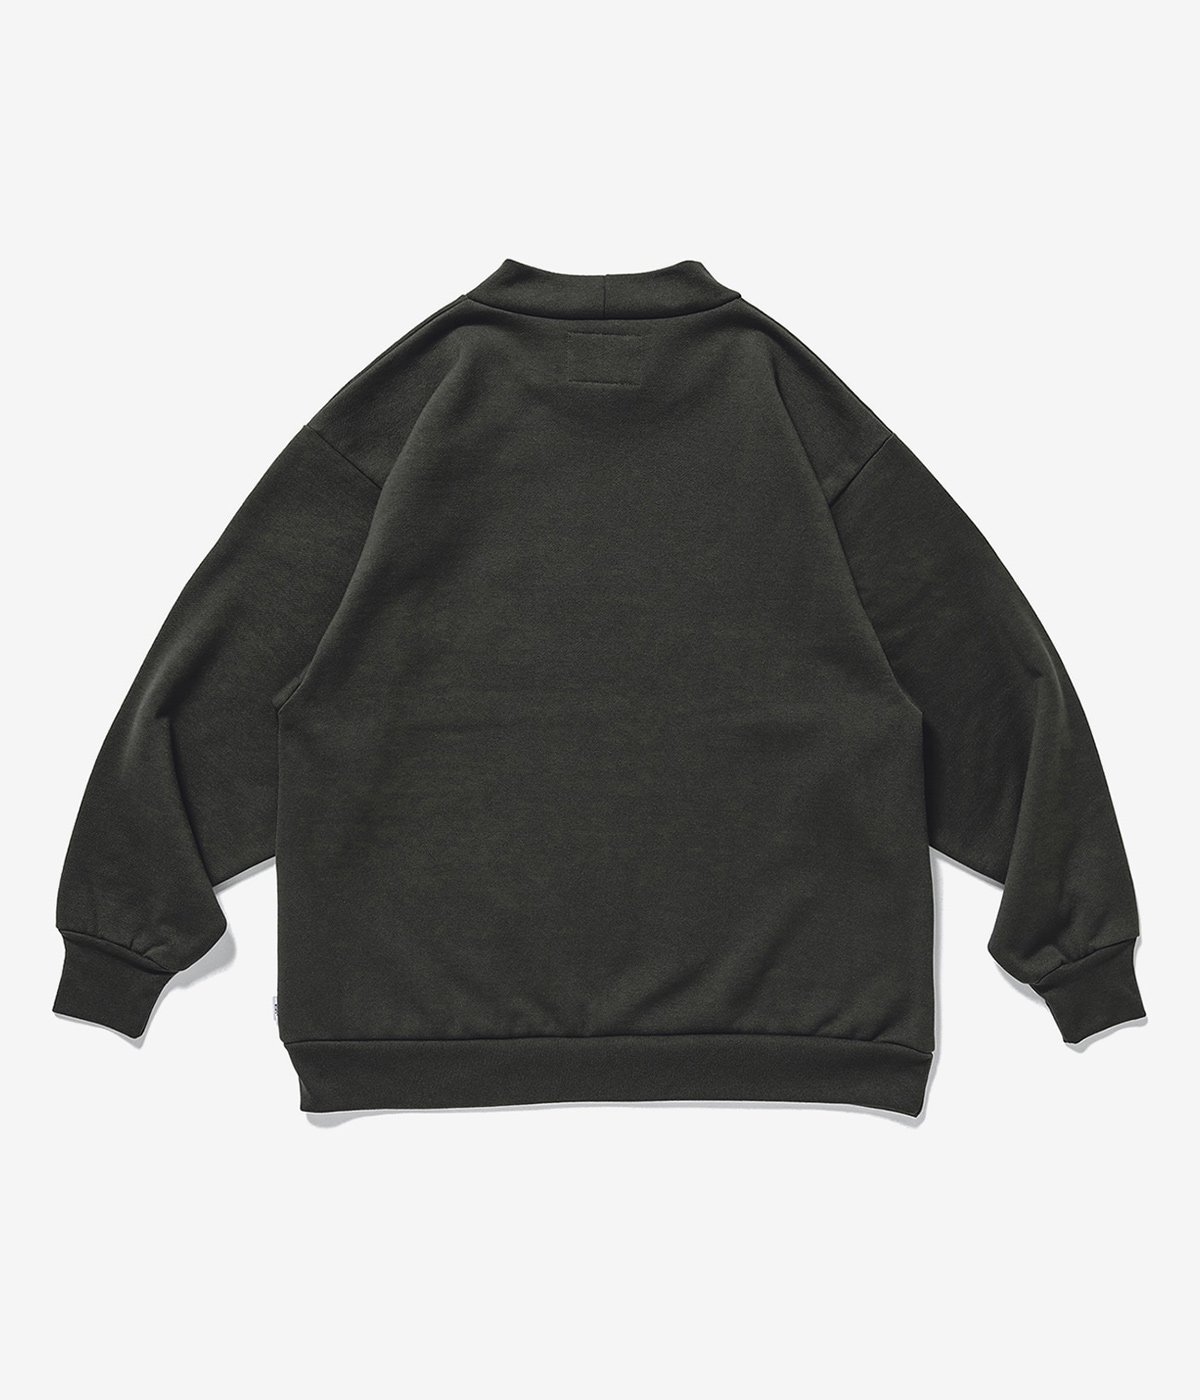 COLLEGE / MOCK NECK / COPO